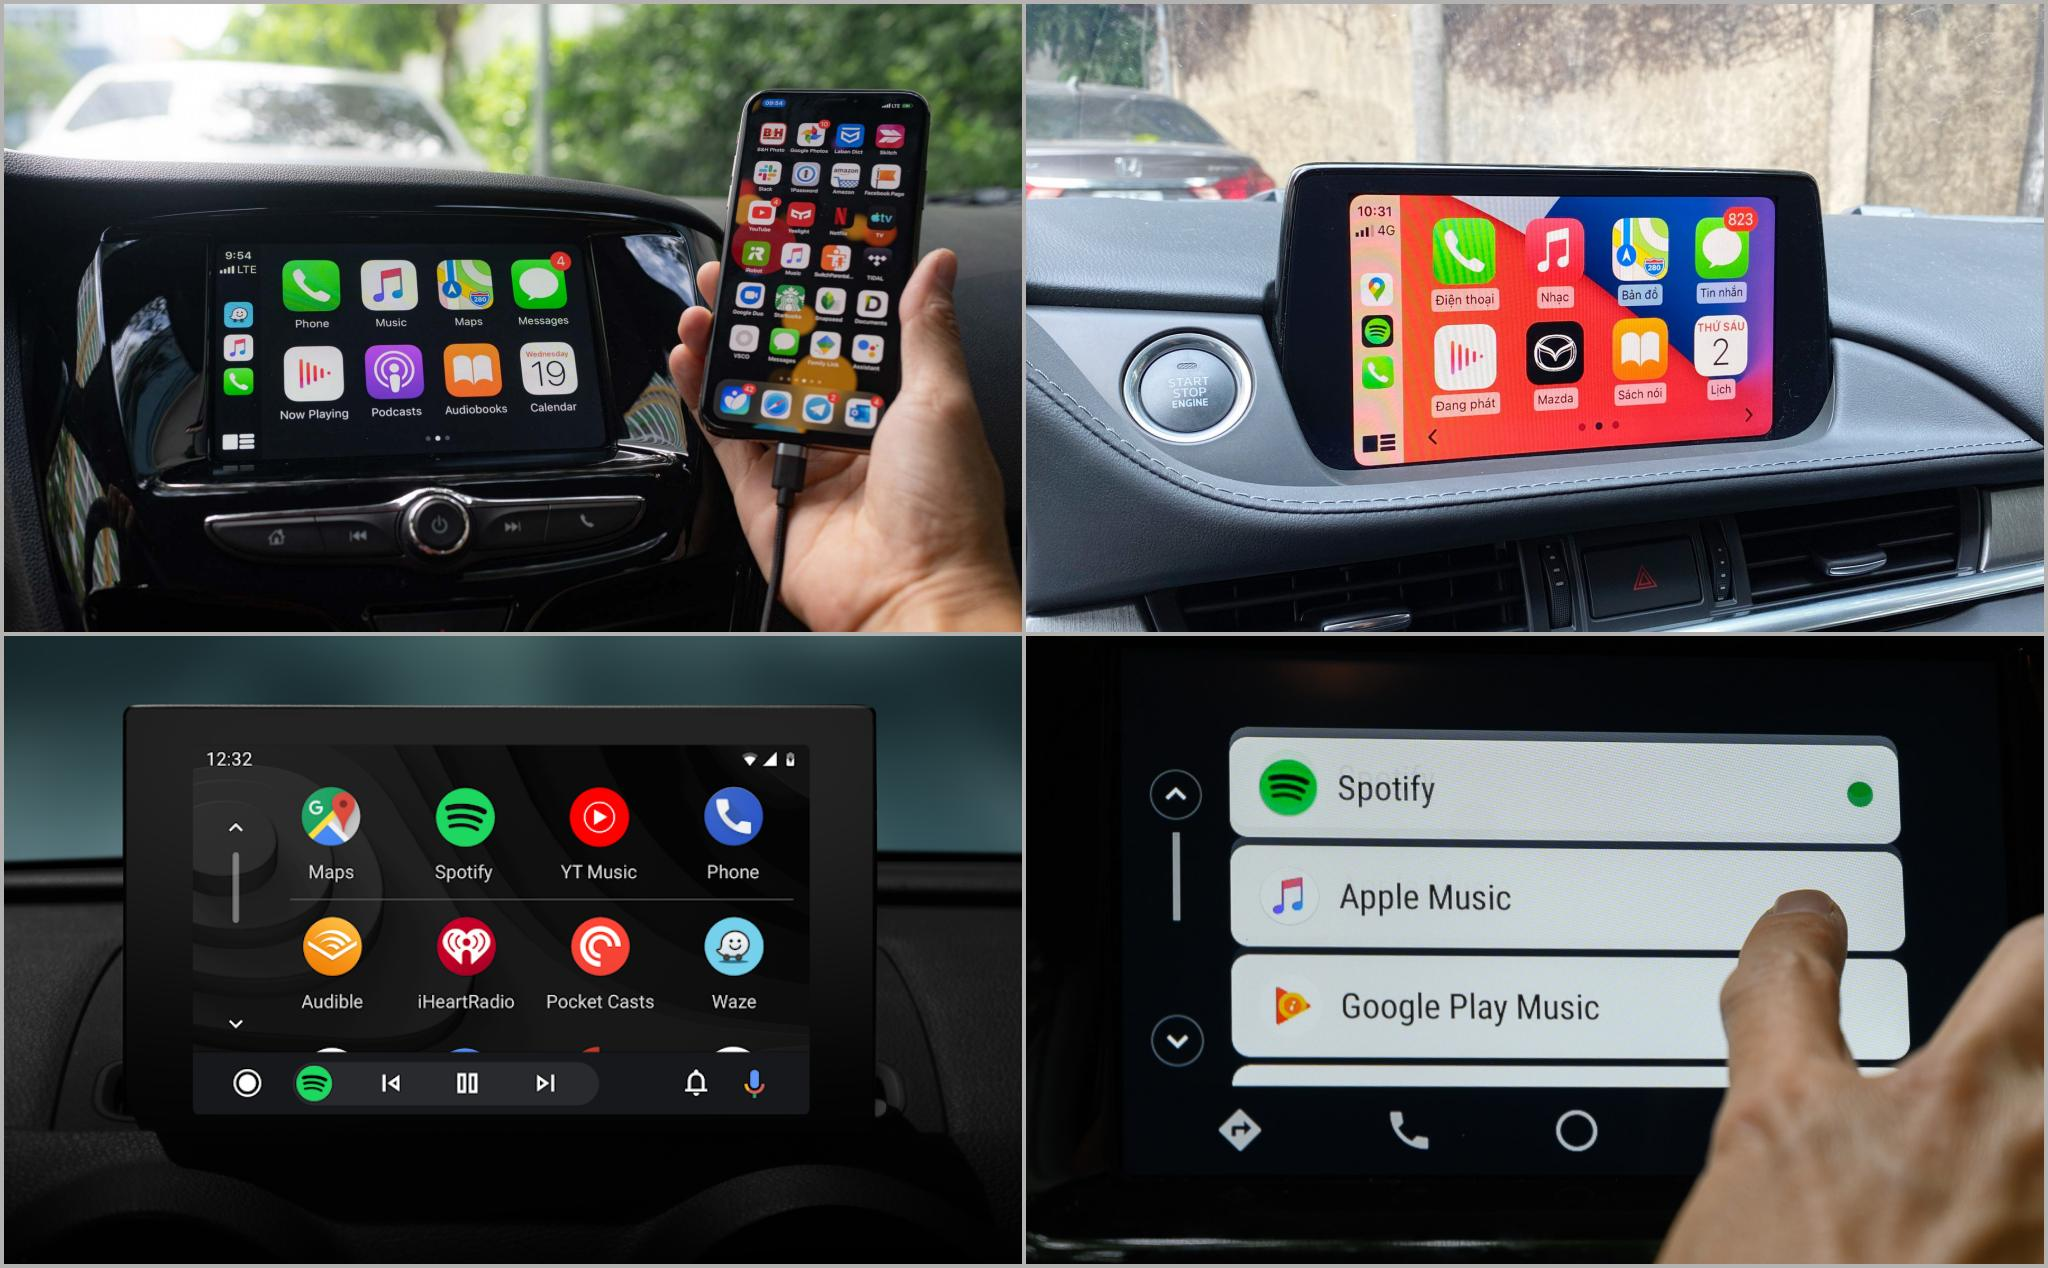 5449816_cover_anh_em_dang_su_dung_apple_carplay_hay_android_auto_tinhte.jpg